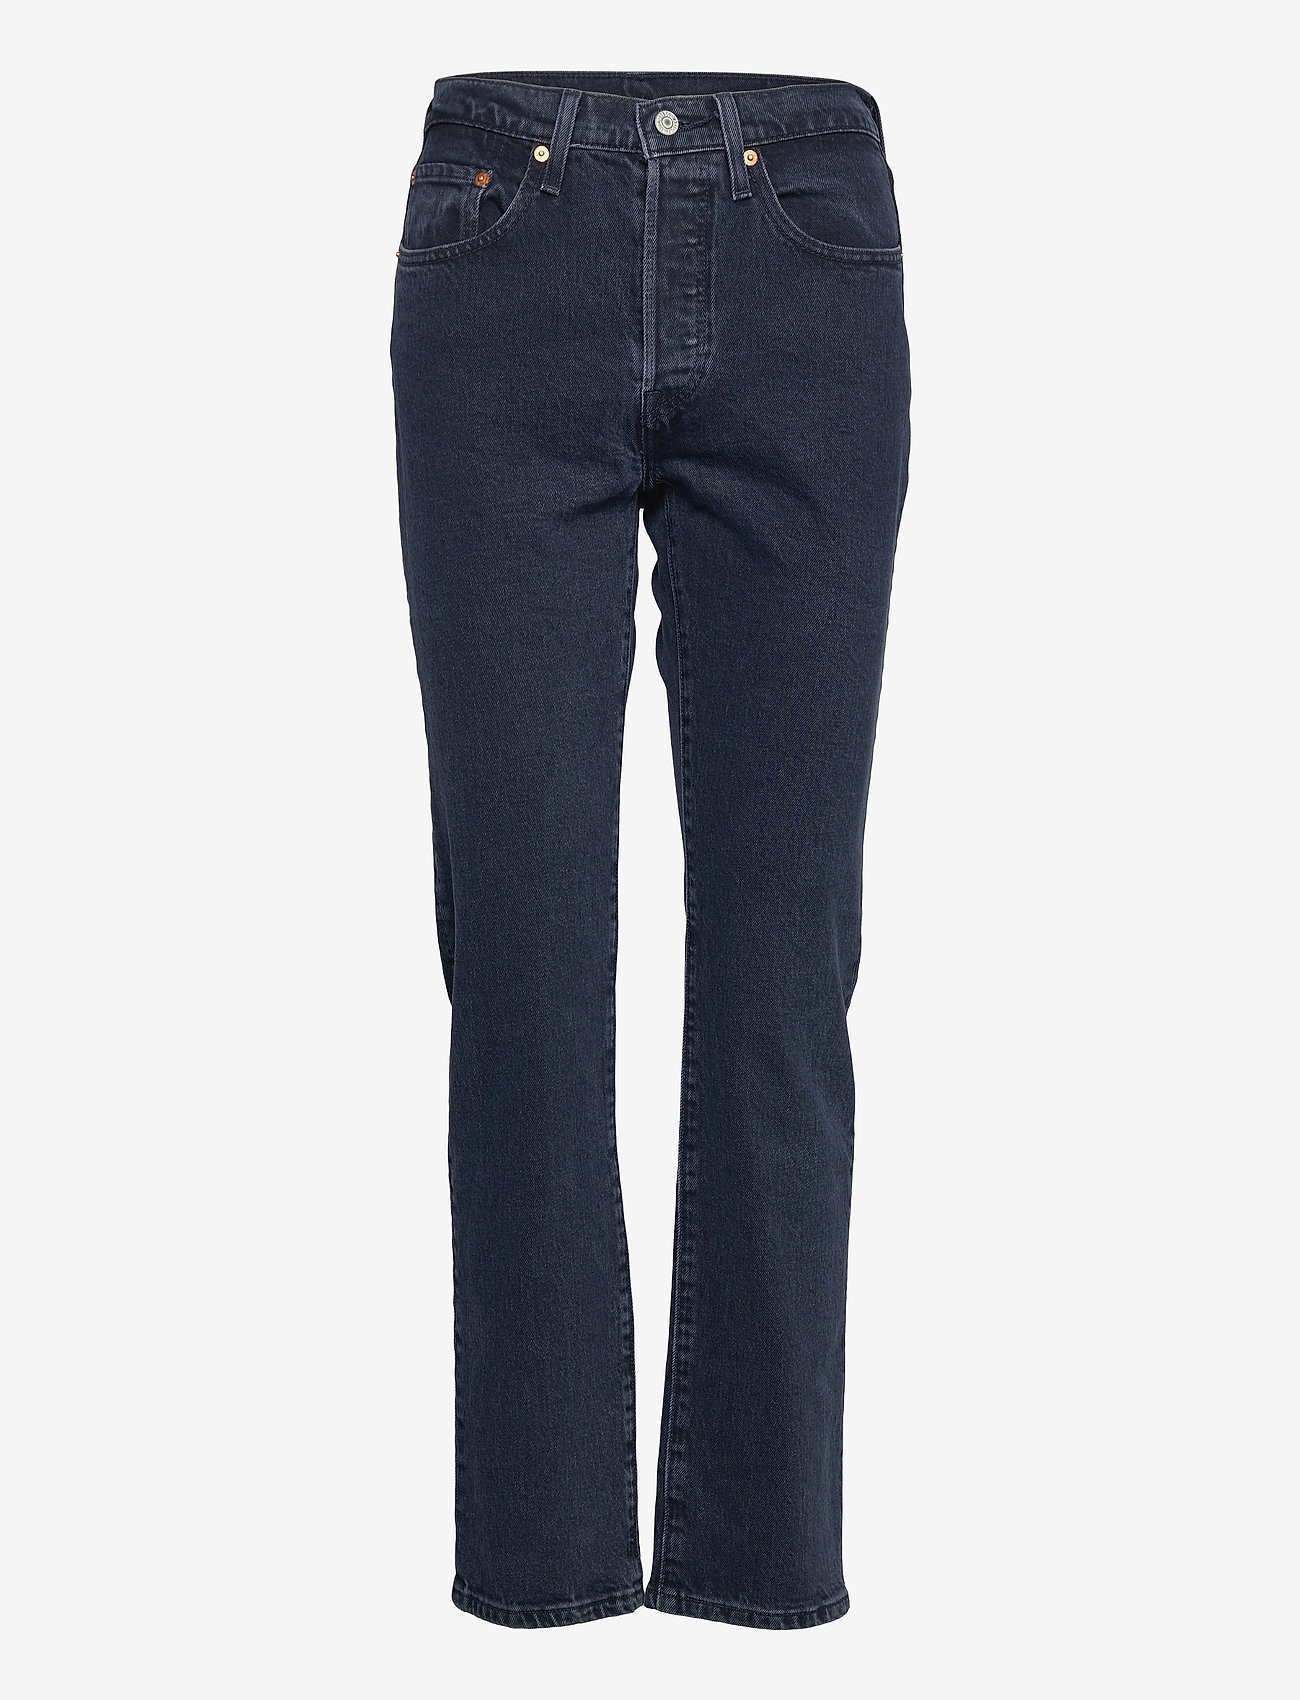 LEVI´S Women - 501 CROP DEEP DARK - straight regular - dark indigo - flat finish - 0